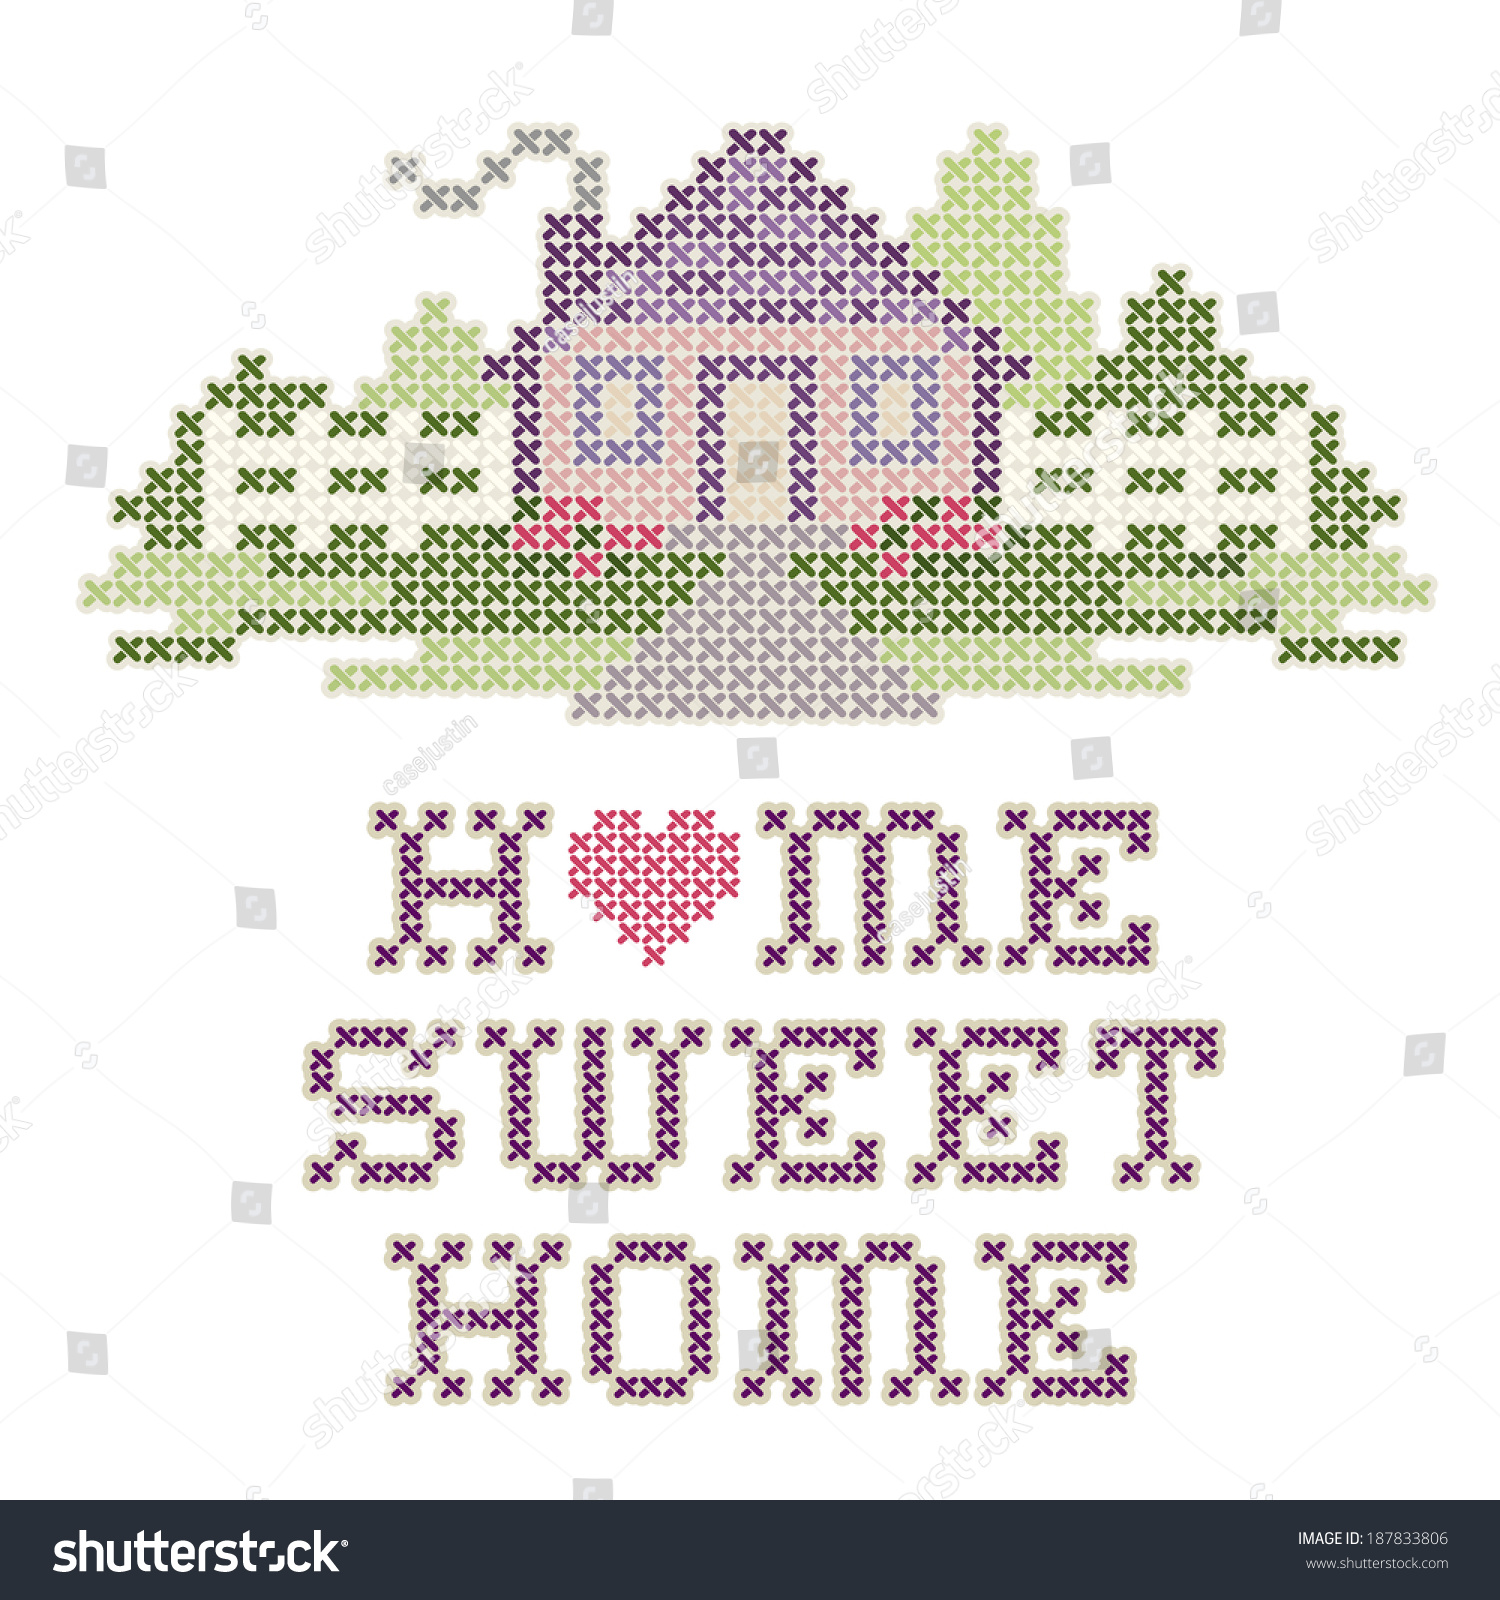 Home sweet home embroidery cross stitch stock illustration 187833806 shutterstock - Home sweet home designs ...